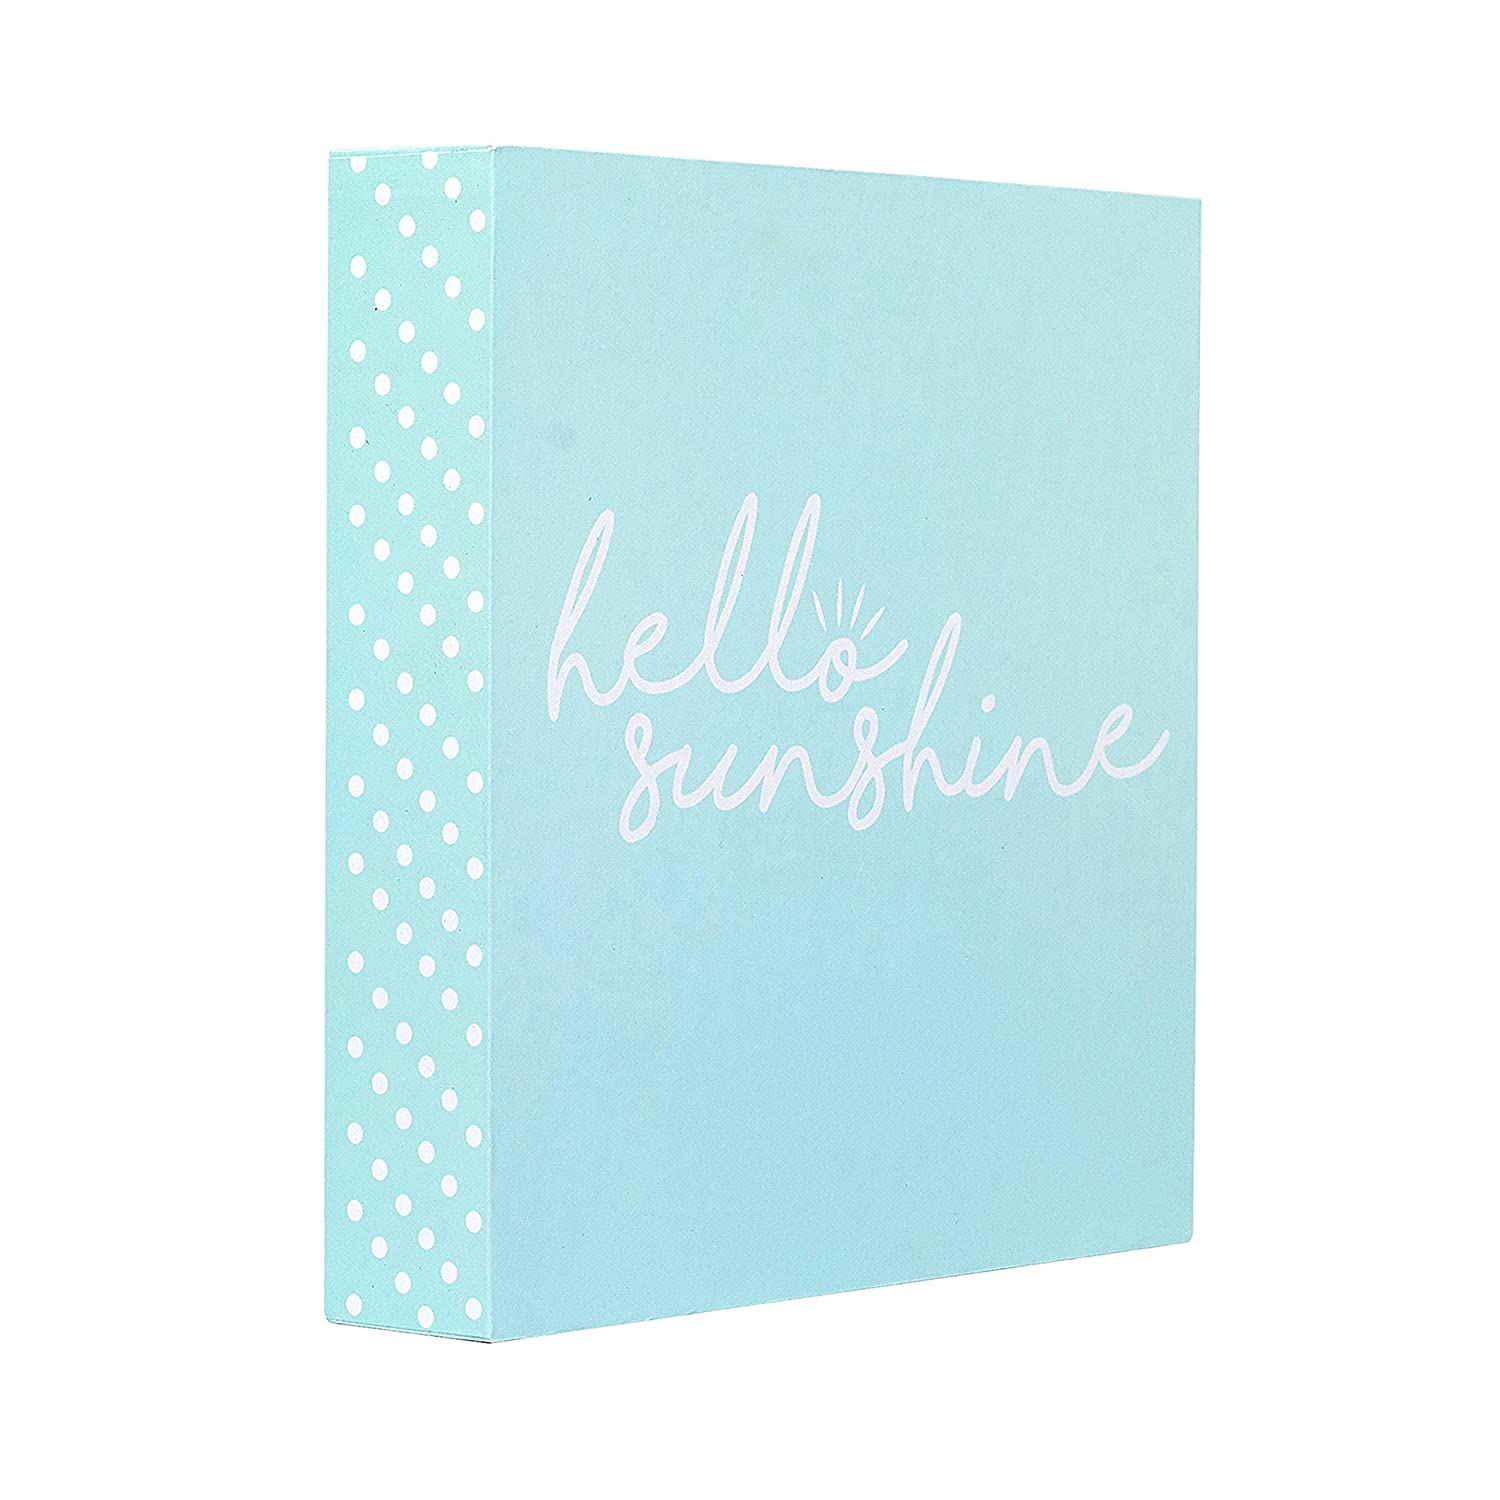 Modern Quote Home Decor Sign with Sayings 8 x 8 Modern Quote Home Decor Sign with Sayings 8 x 8 FM17C0730 Barnyard Designs Hello Sunshine Box Sign